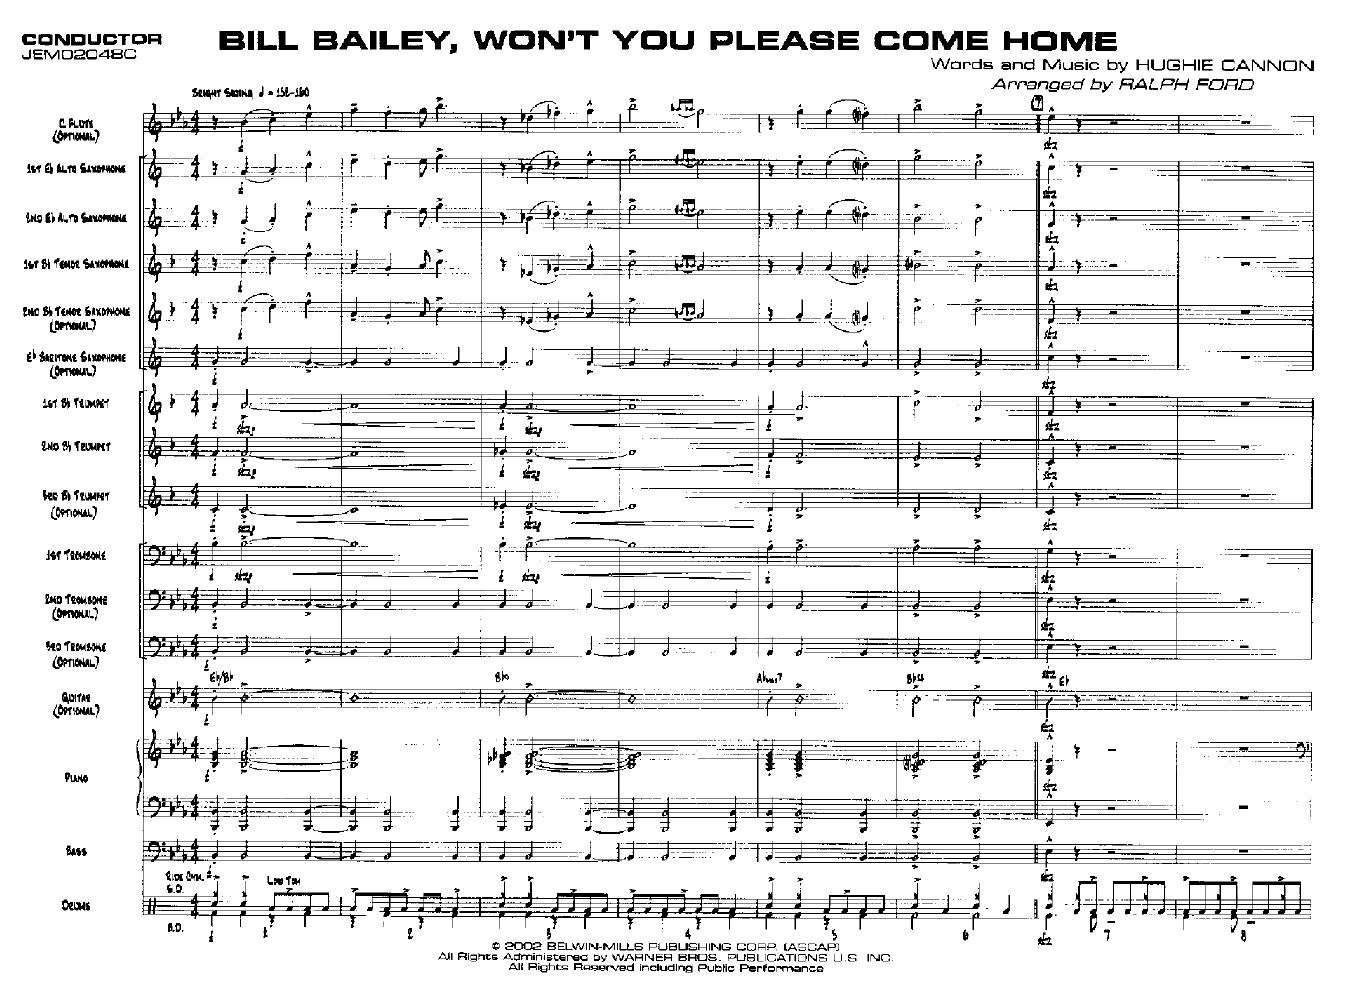 Bill Bailey, Wont You Please Come Home